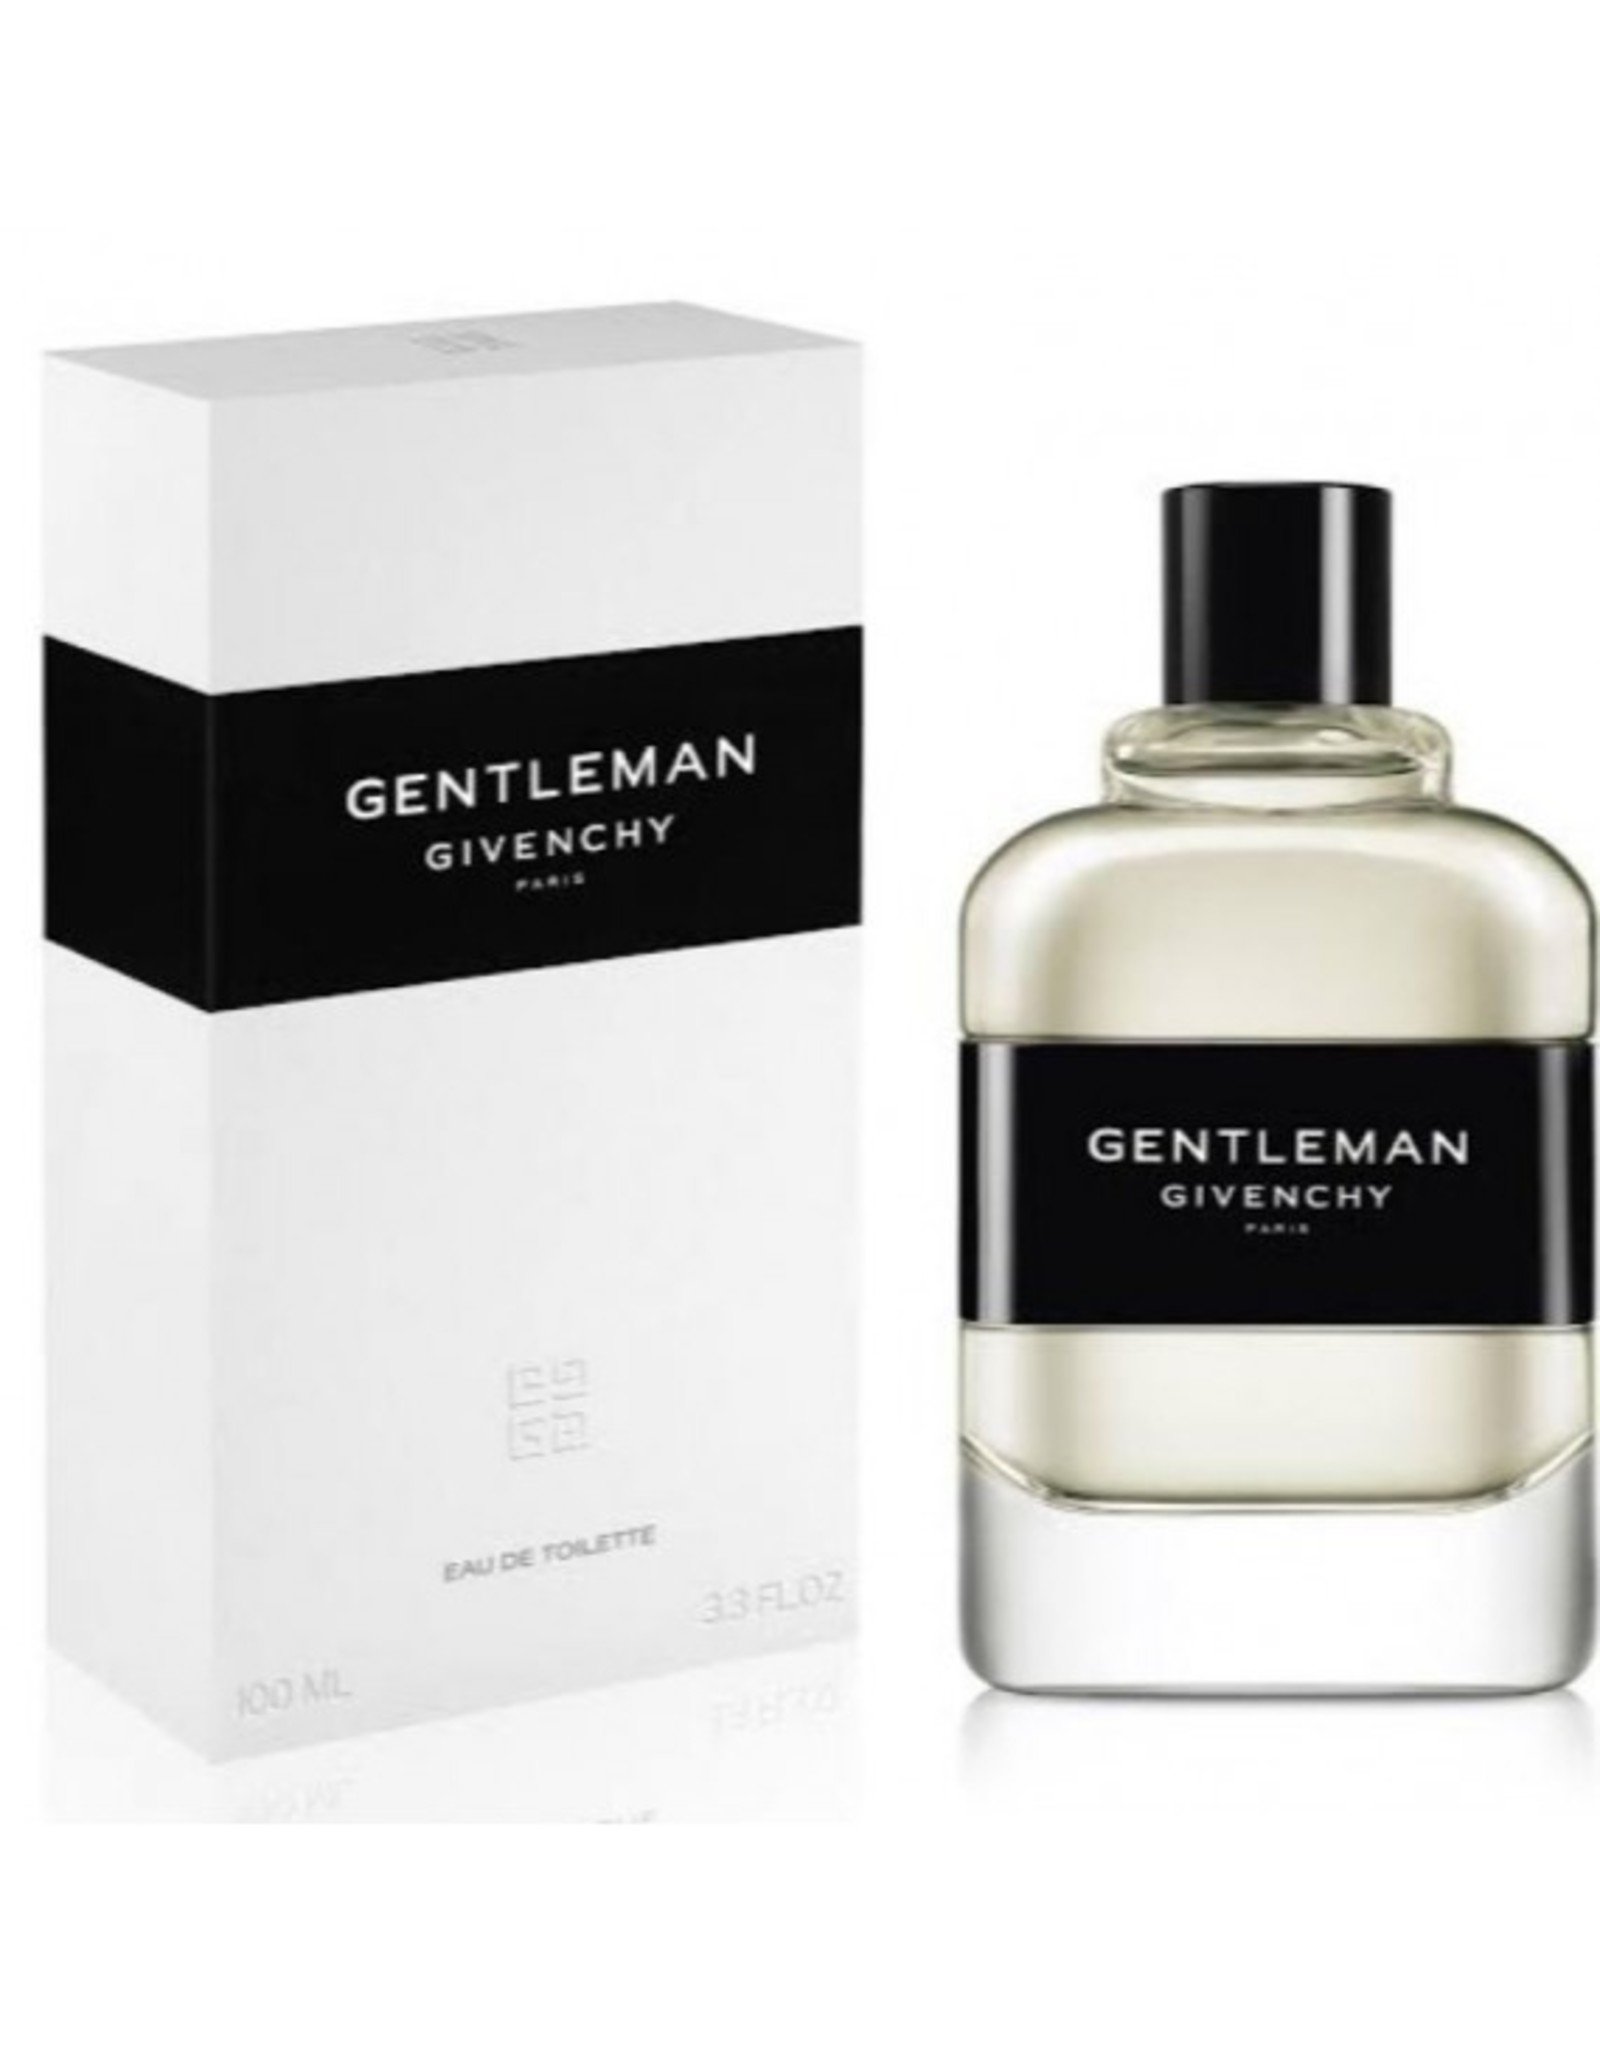 GIVENCHY GIVENCHY GENTLEMAN (2017)